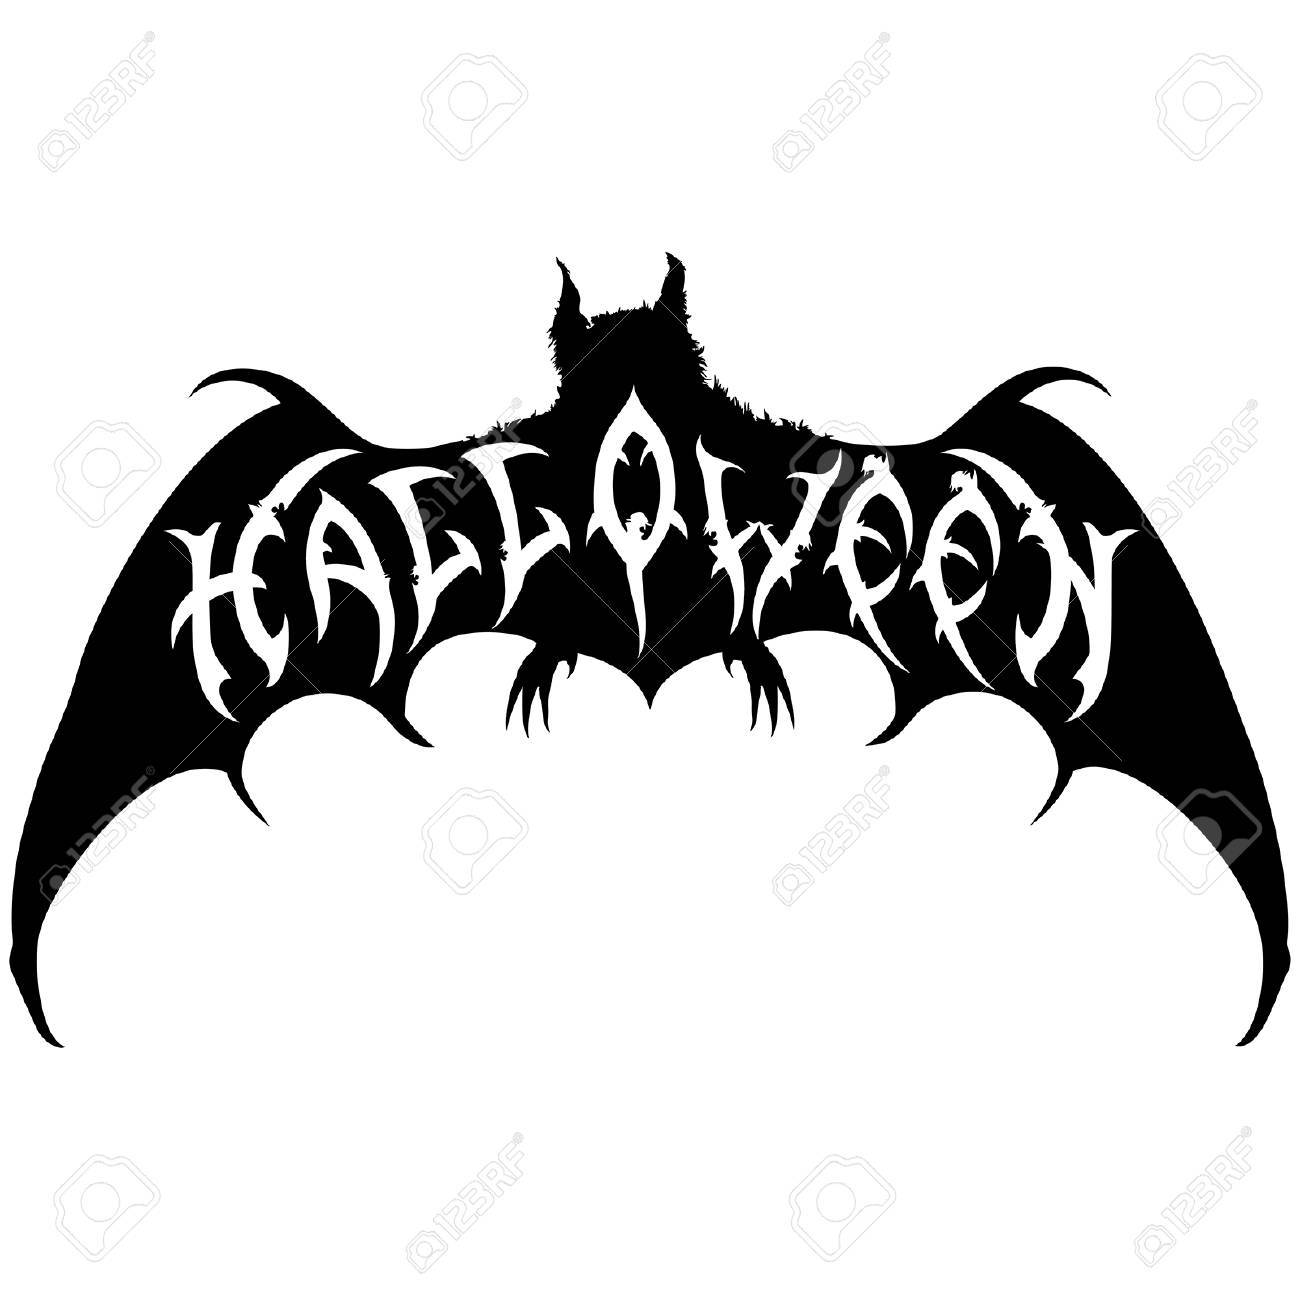 illustration halloween title placed into a bat silhouette handmade text